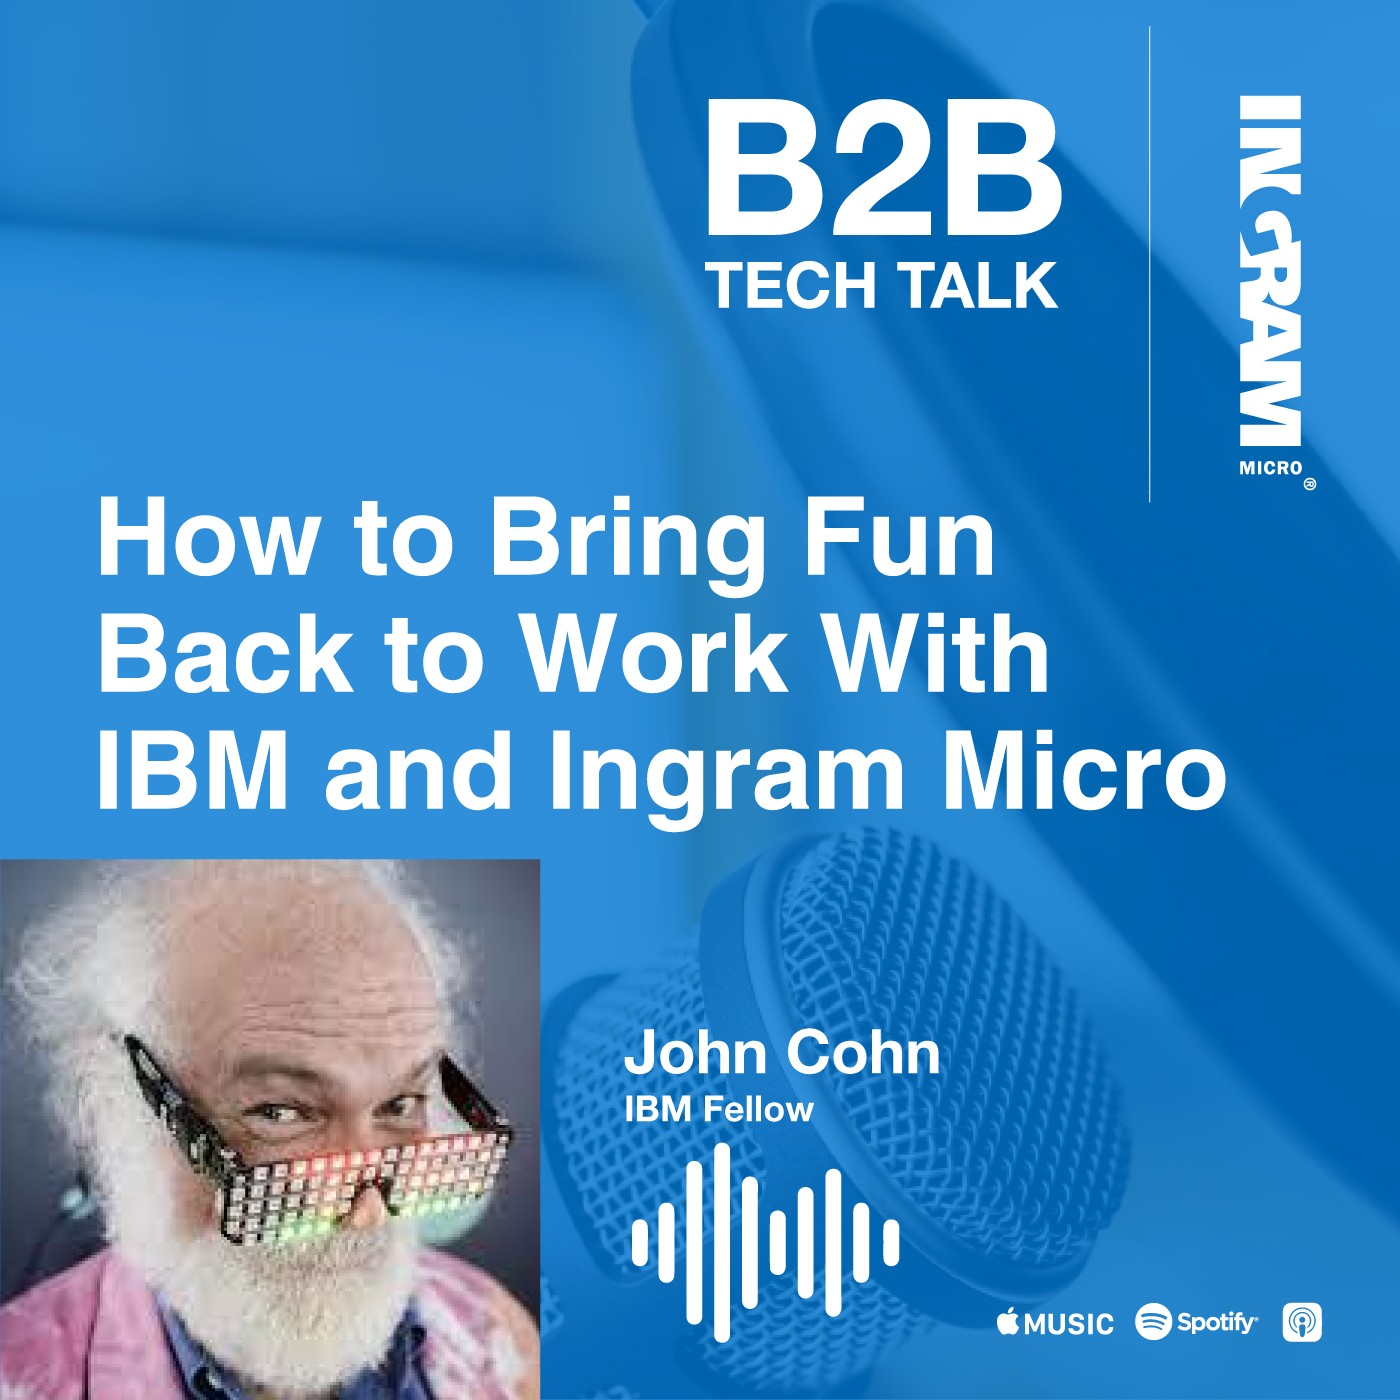 How to Bring Fun Back to Work With IBM and Ingram Micro